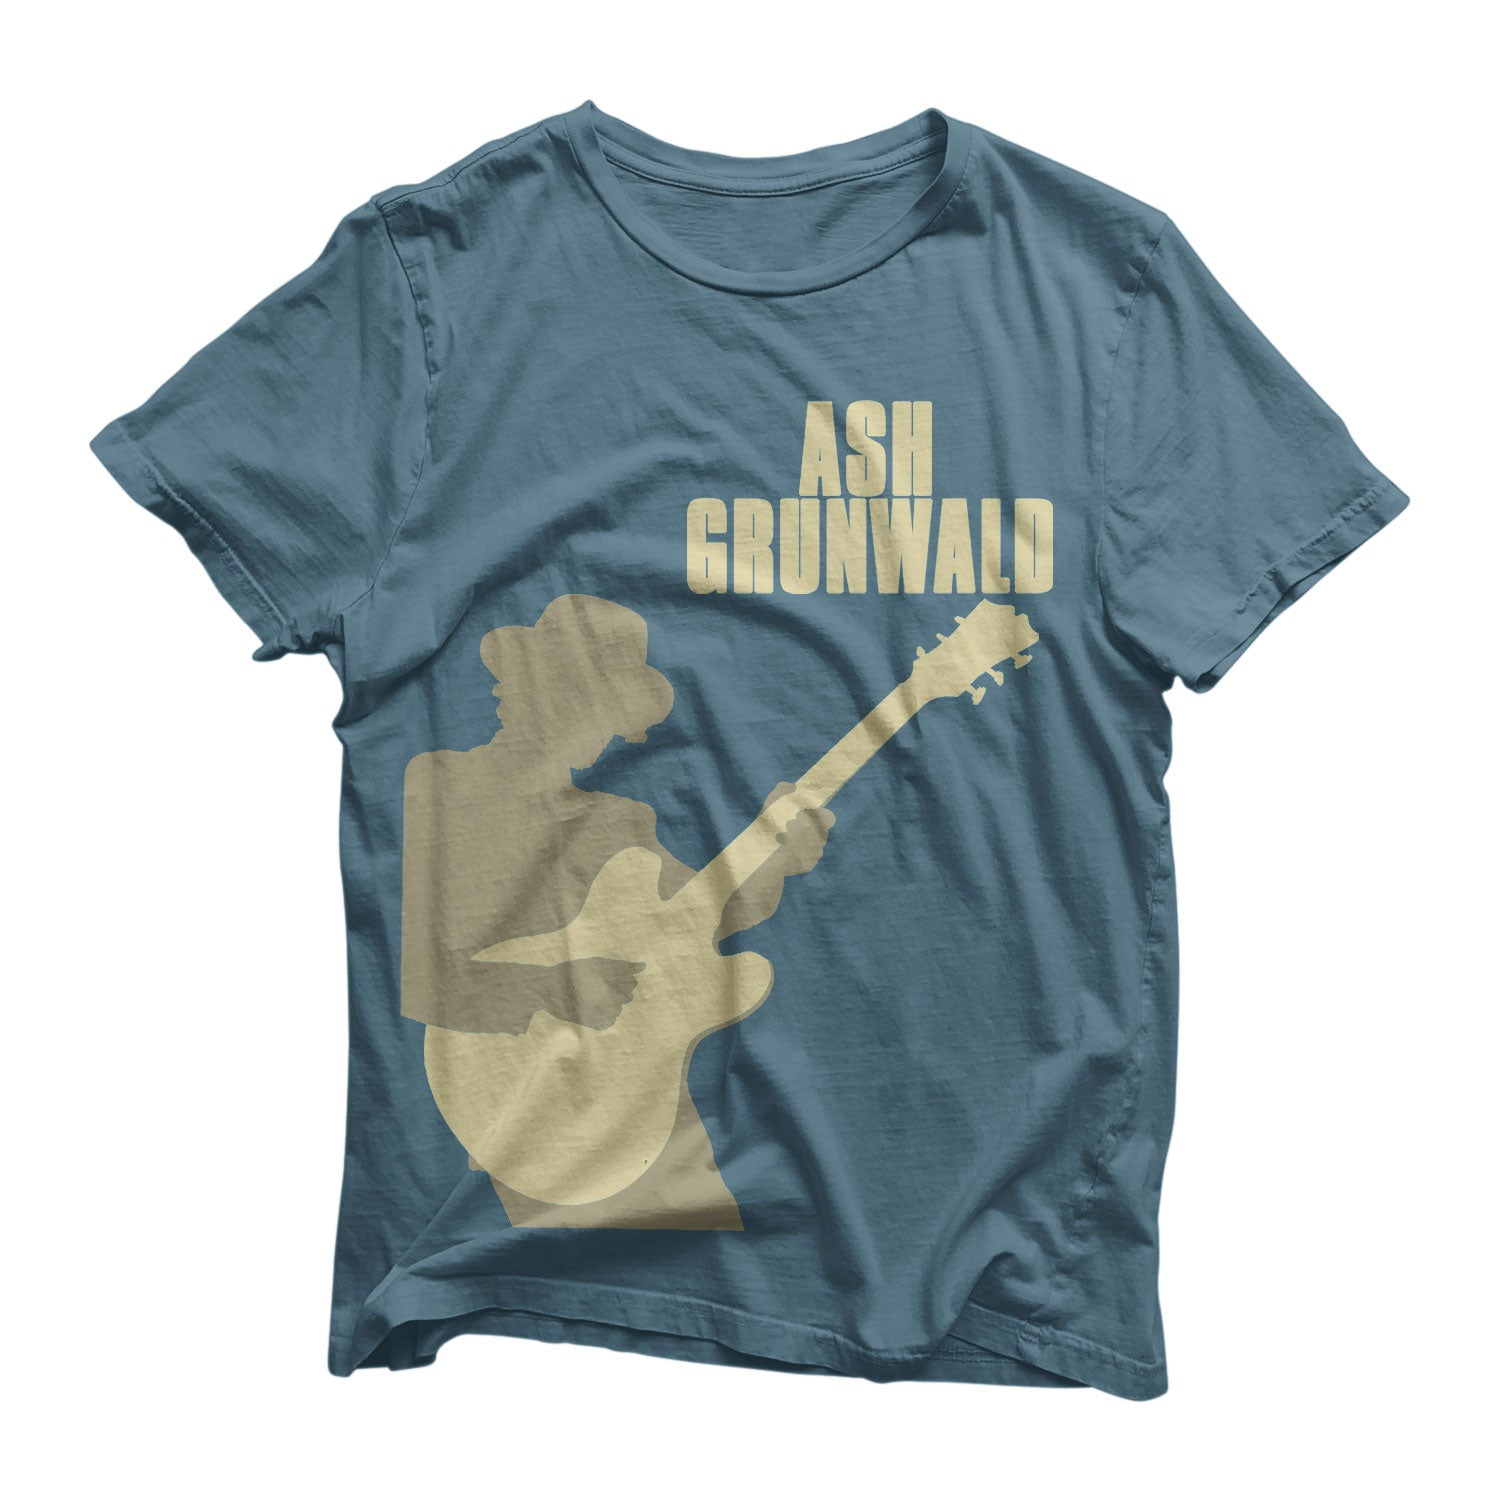 Ash Grunwald T-Shirt - Dark Blue